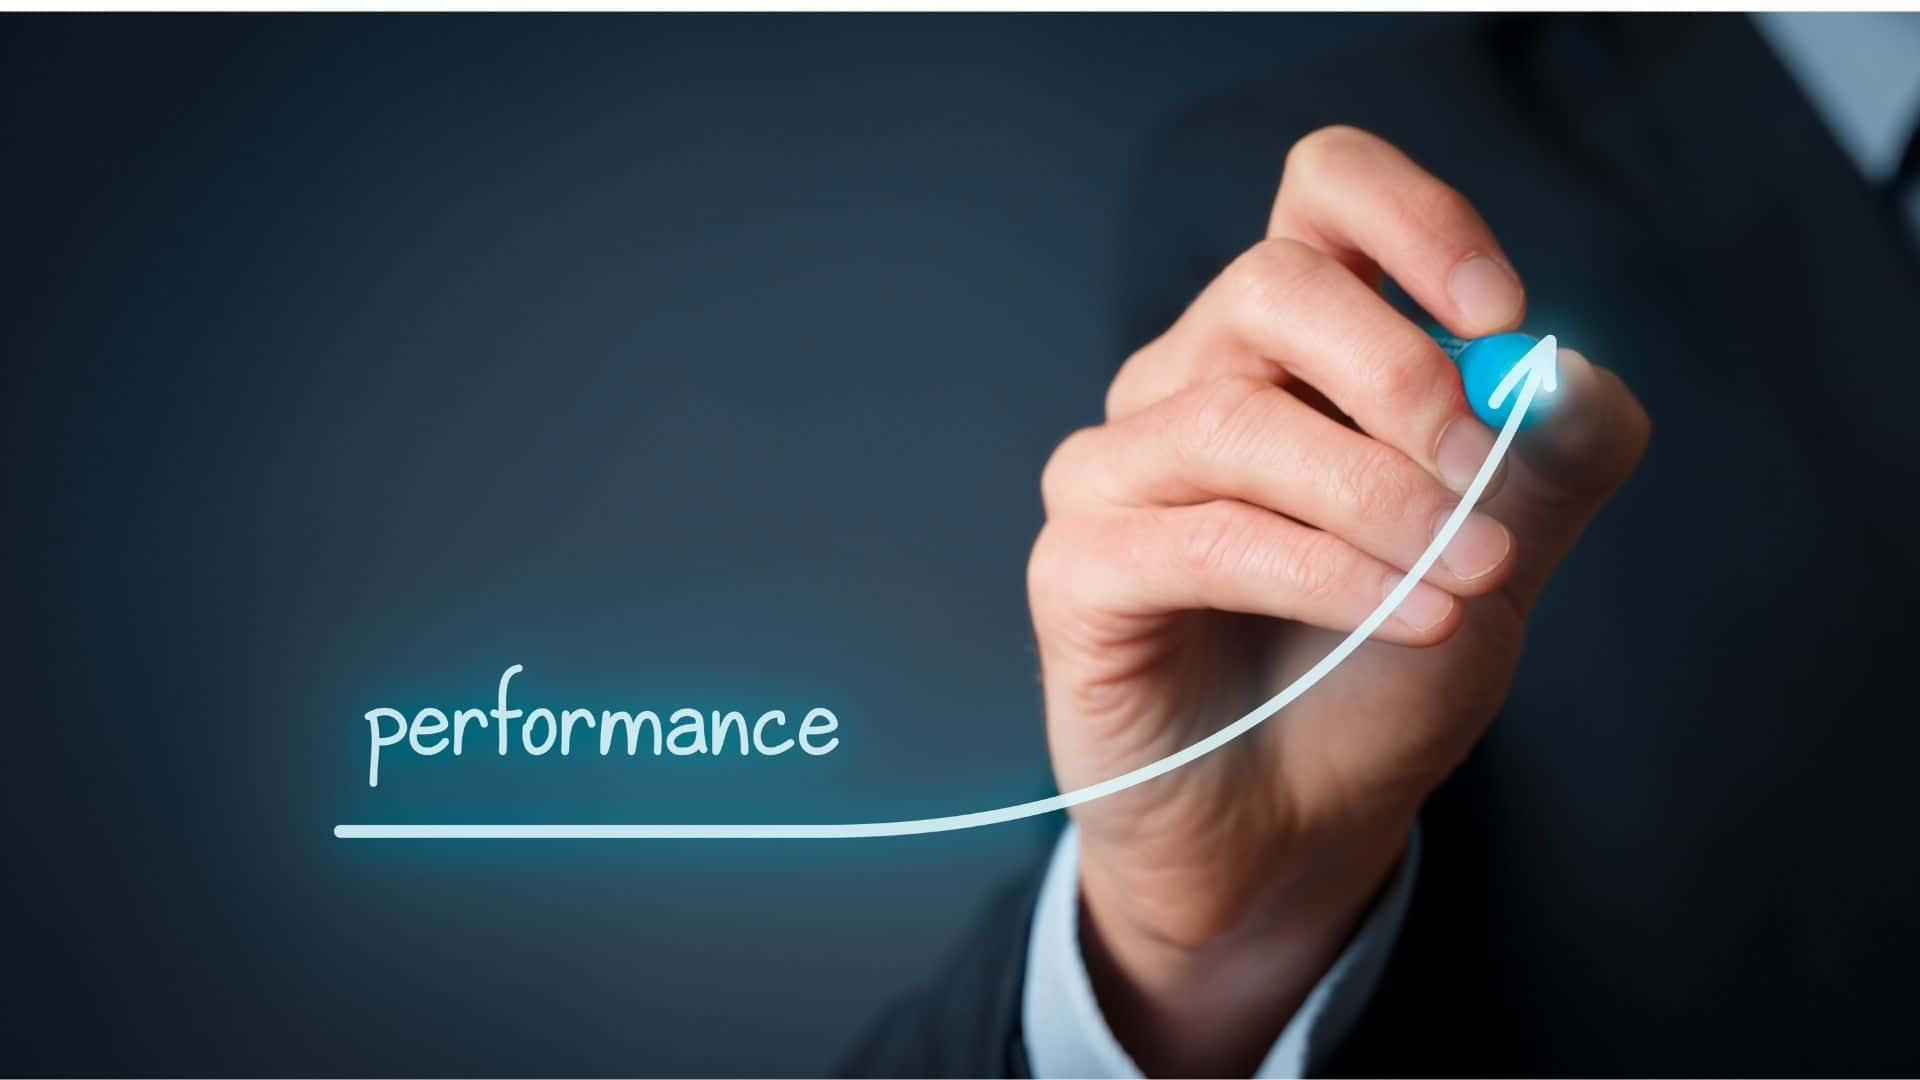 Performance Management and Employee Performance